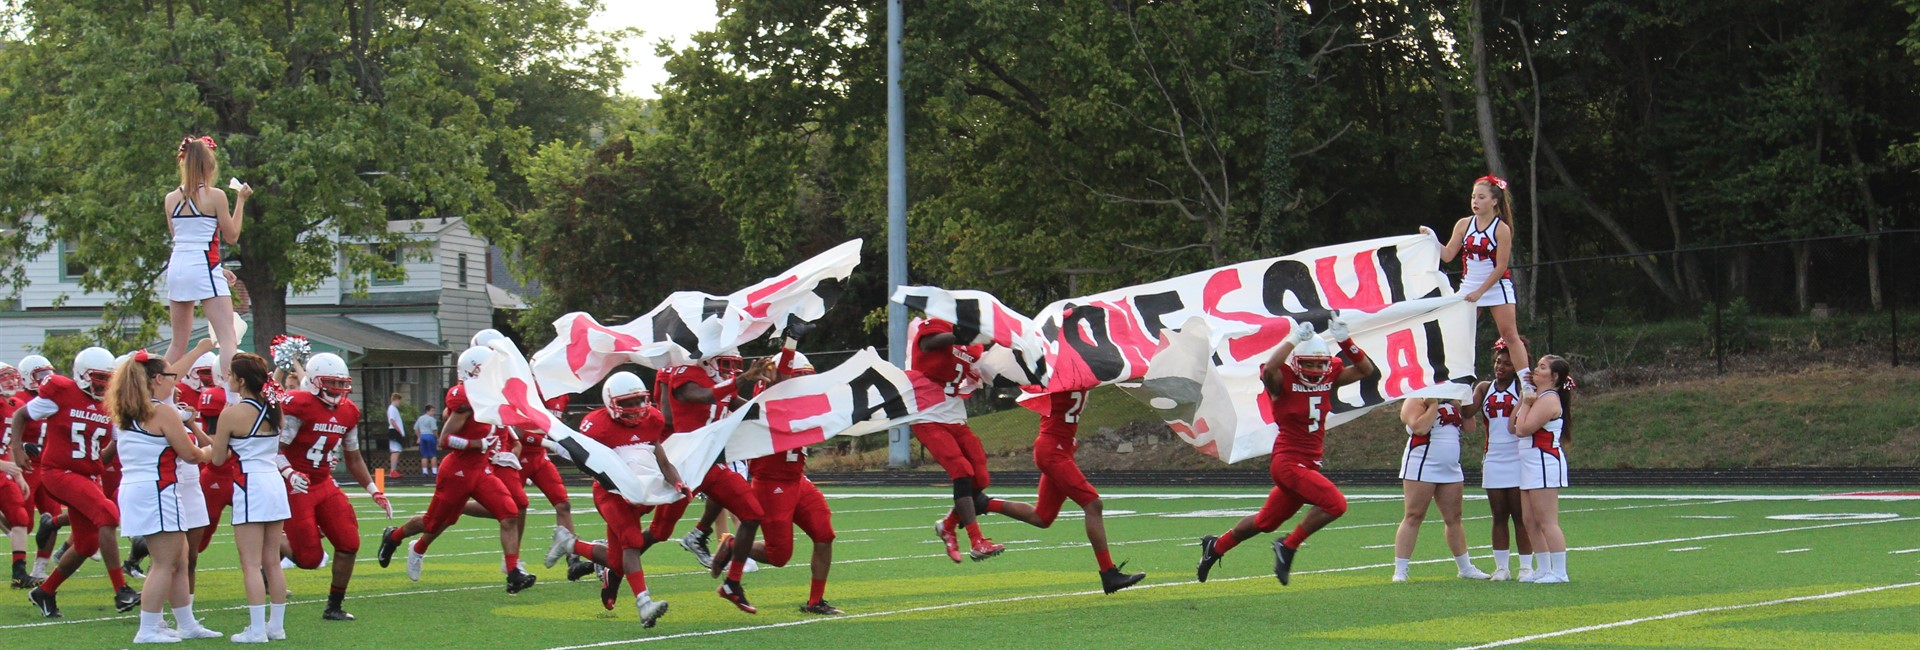 The Bulldog football team crashes through the banner to enter the field.